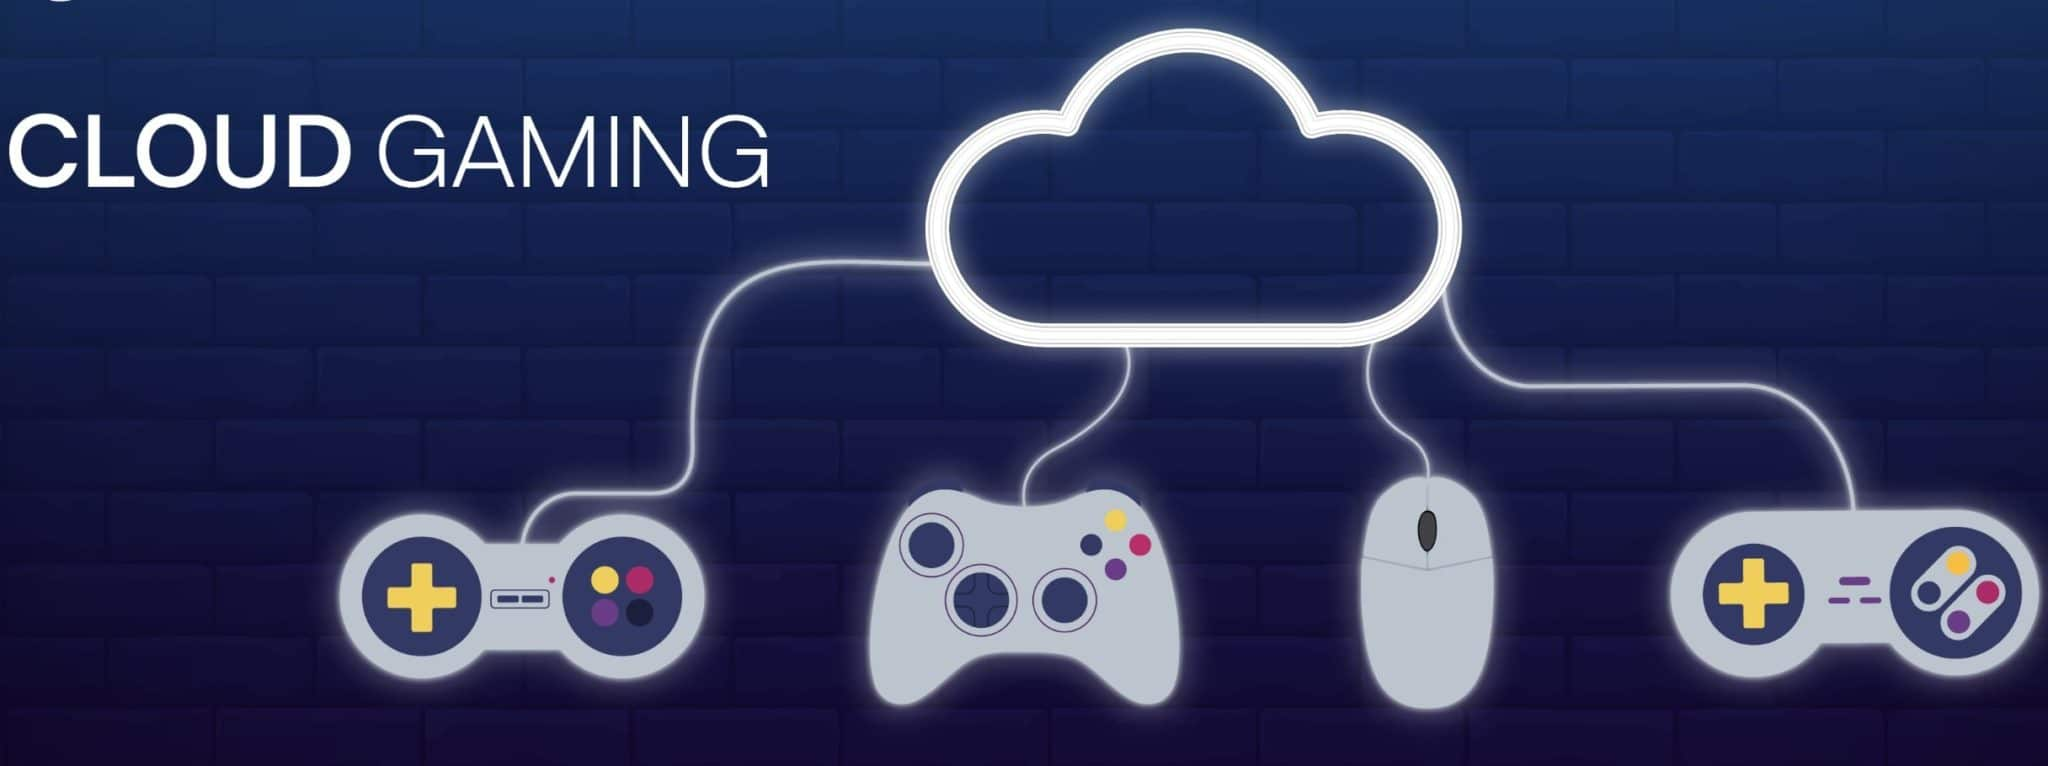 Cloud-Gaming